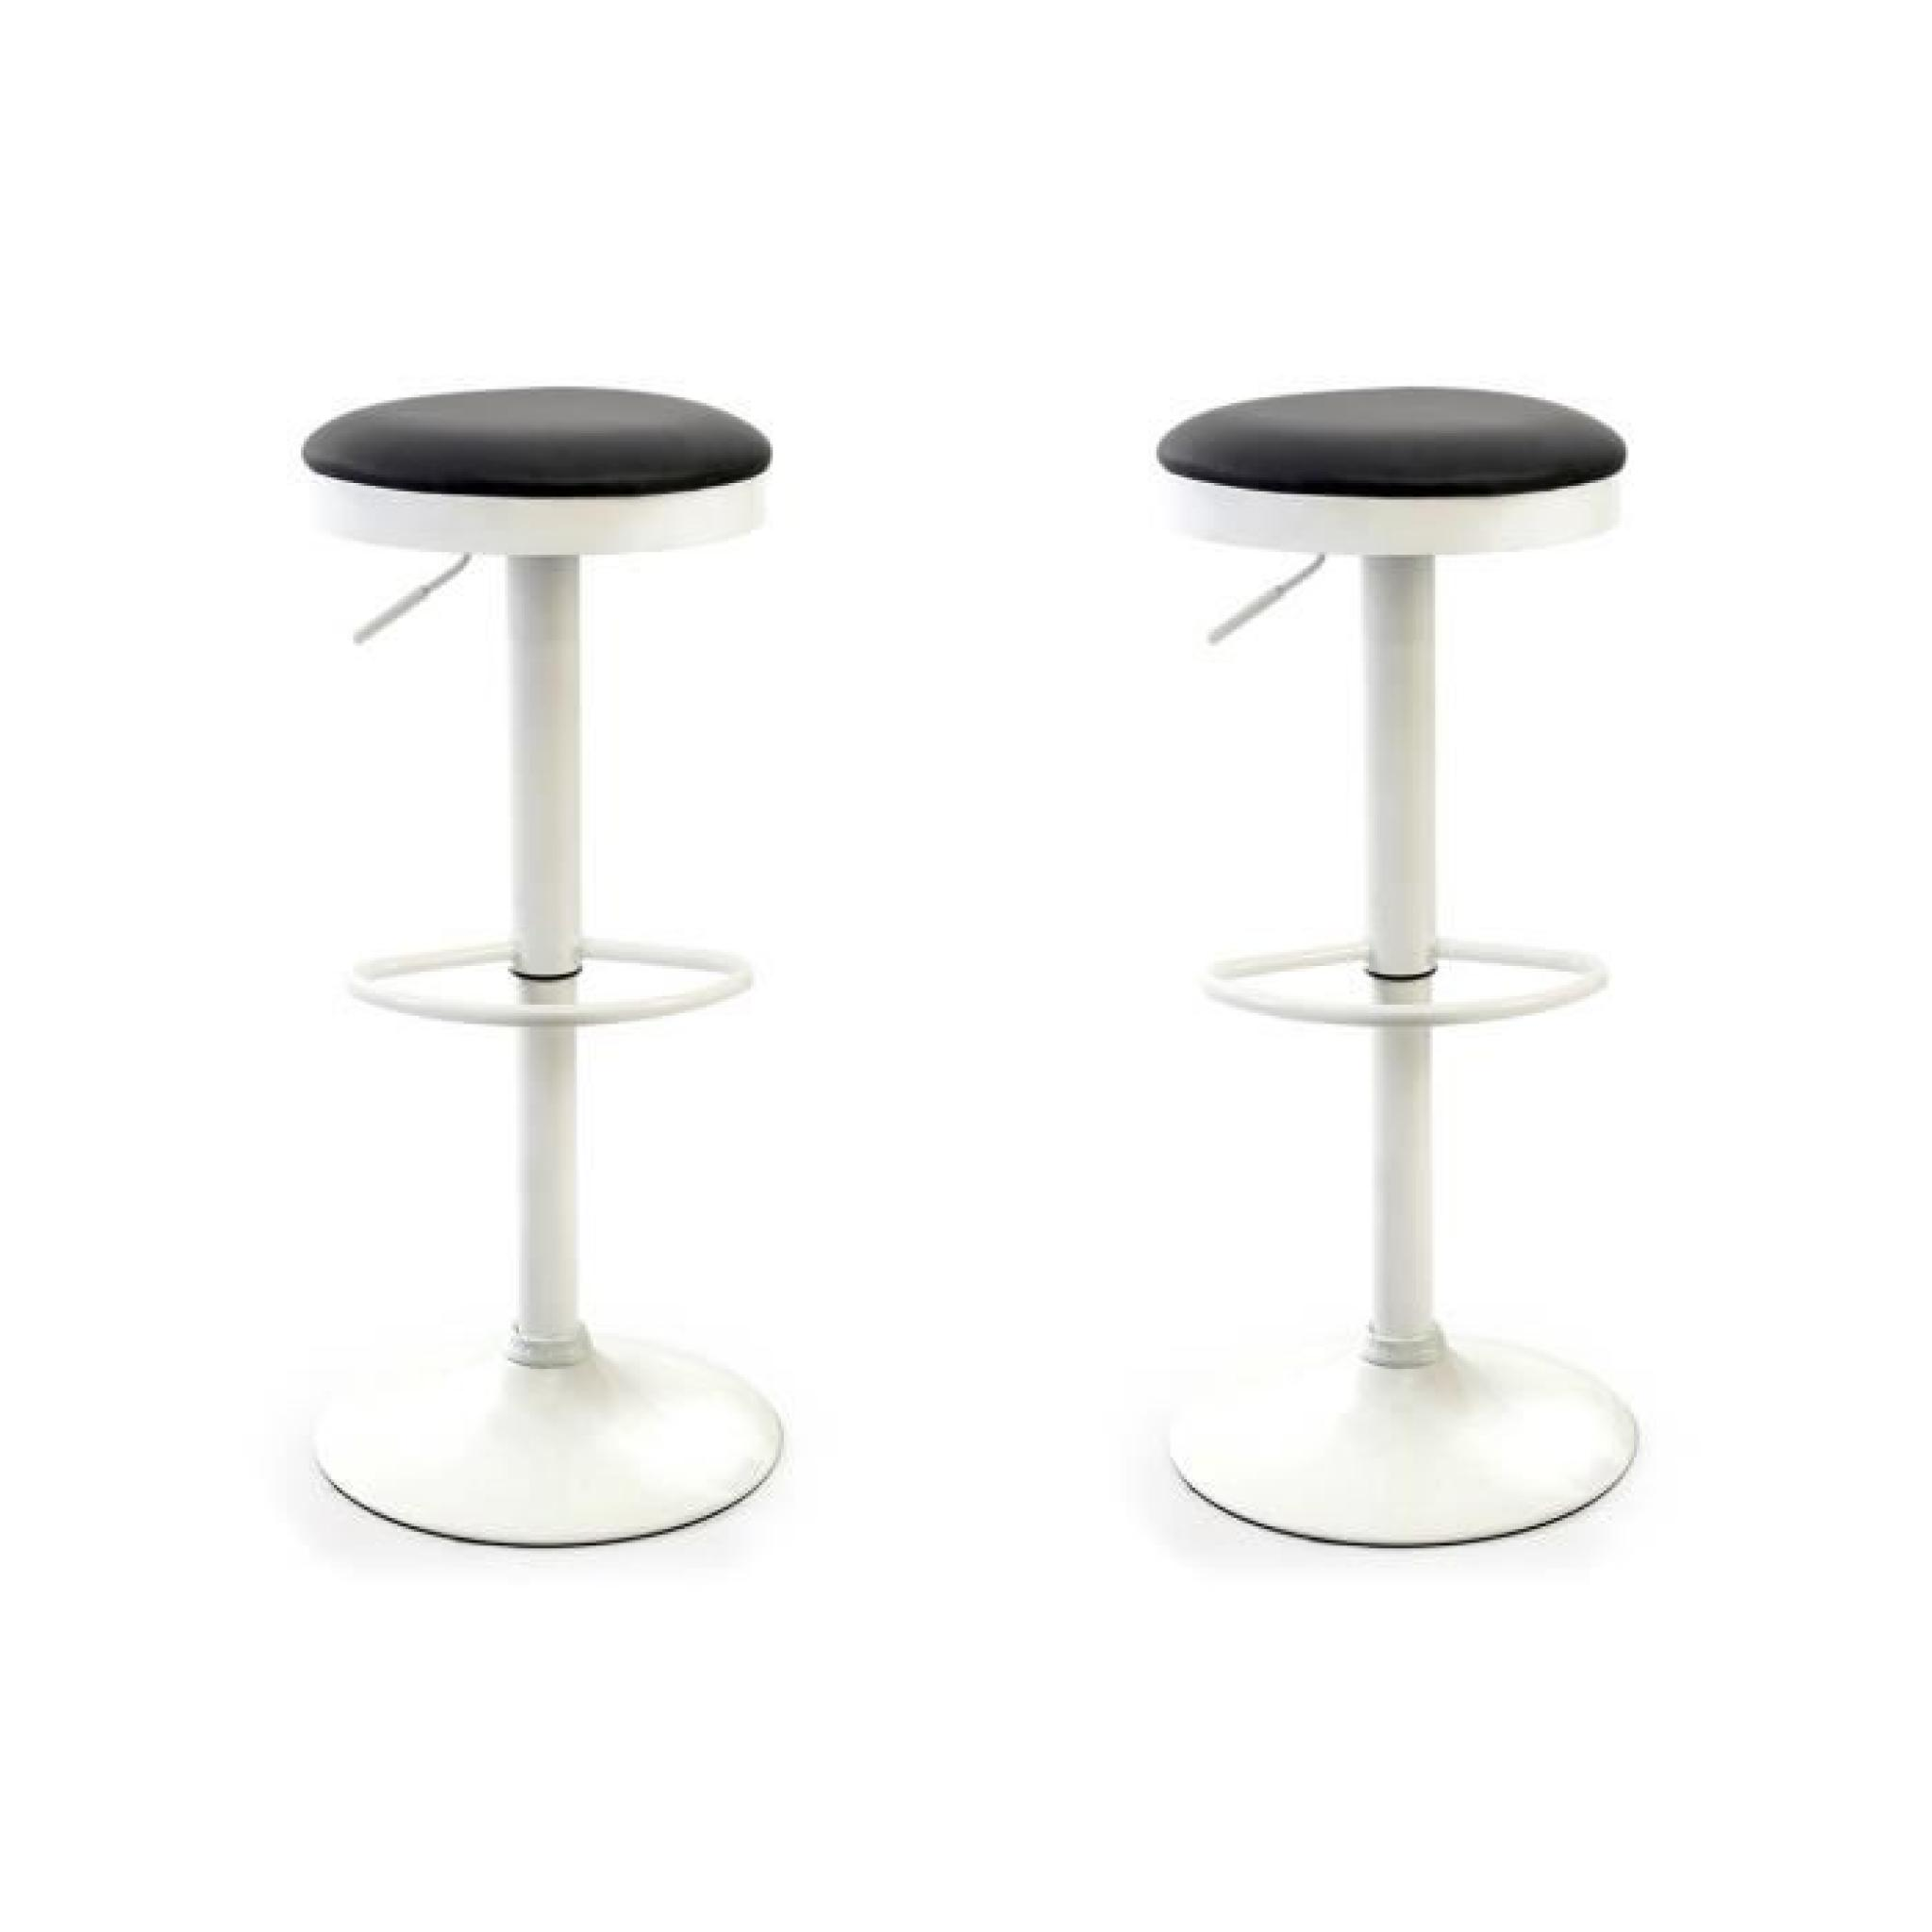 lot de 2 tabouret de bar pas cher assise tabouret de bar lot de tabourets chaises de bar bubble. Black Bedroom Furniture Sets. Home Design Ideas